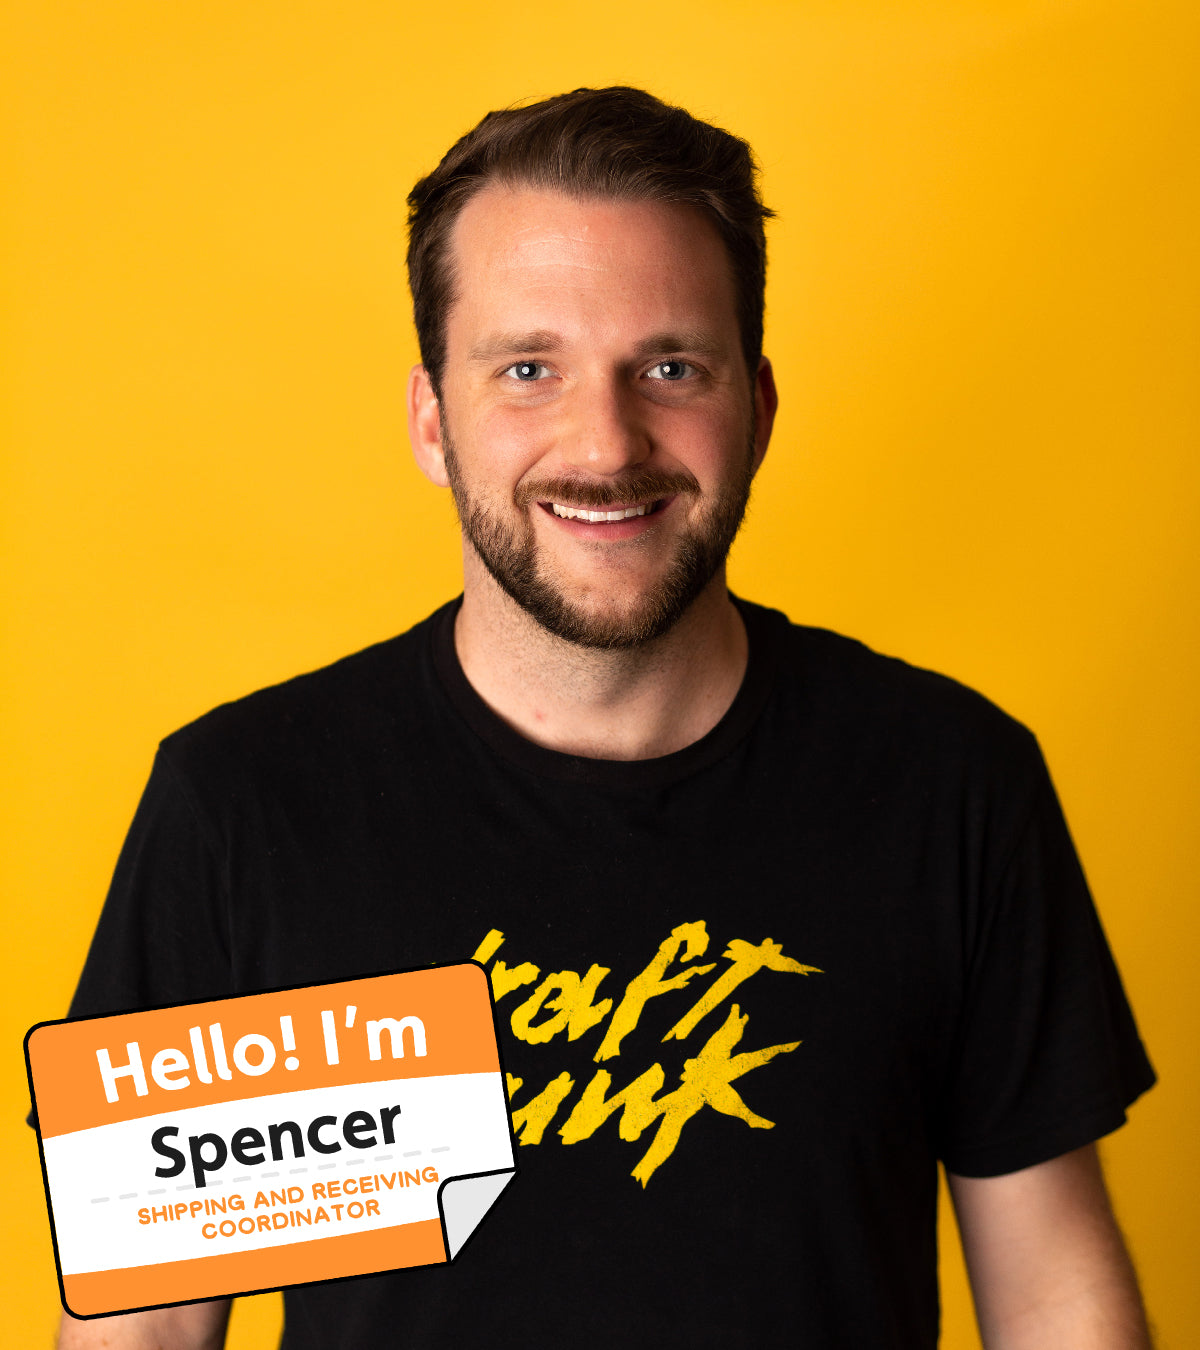 """Spencer, bearded man with short hair, smiling at camera. Name tag illustration included, stating """"Hello! I'm Spencer, Shipping and Receiving Coordinator."""""""